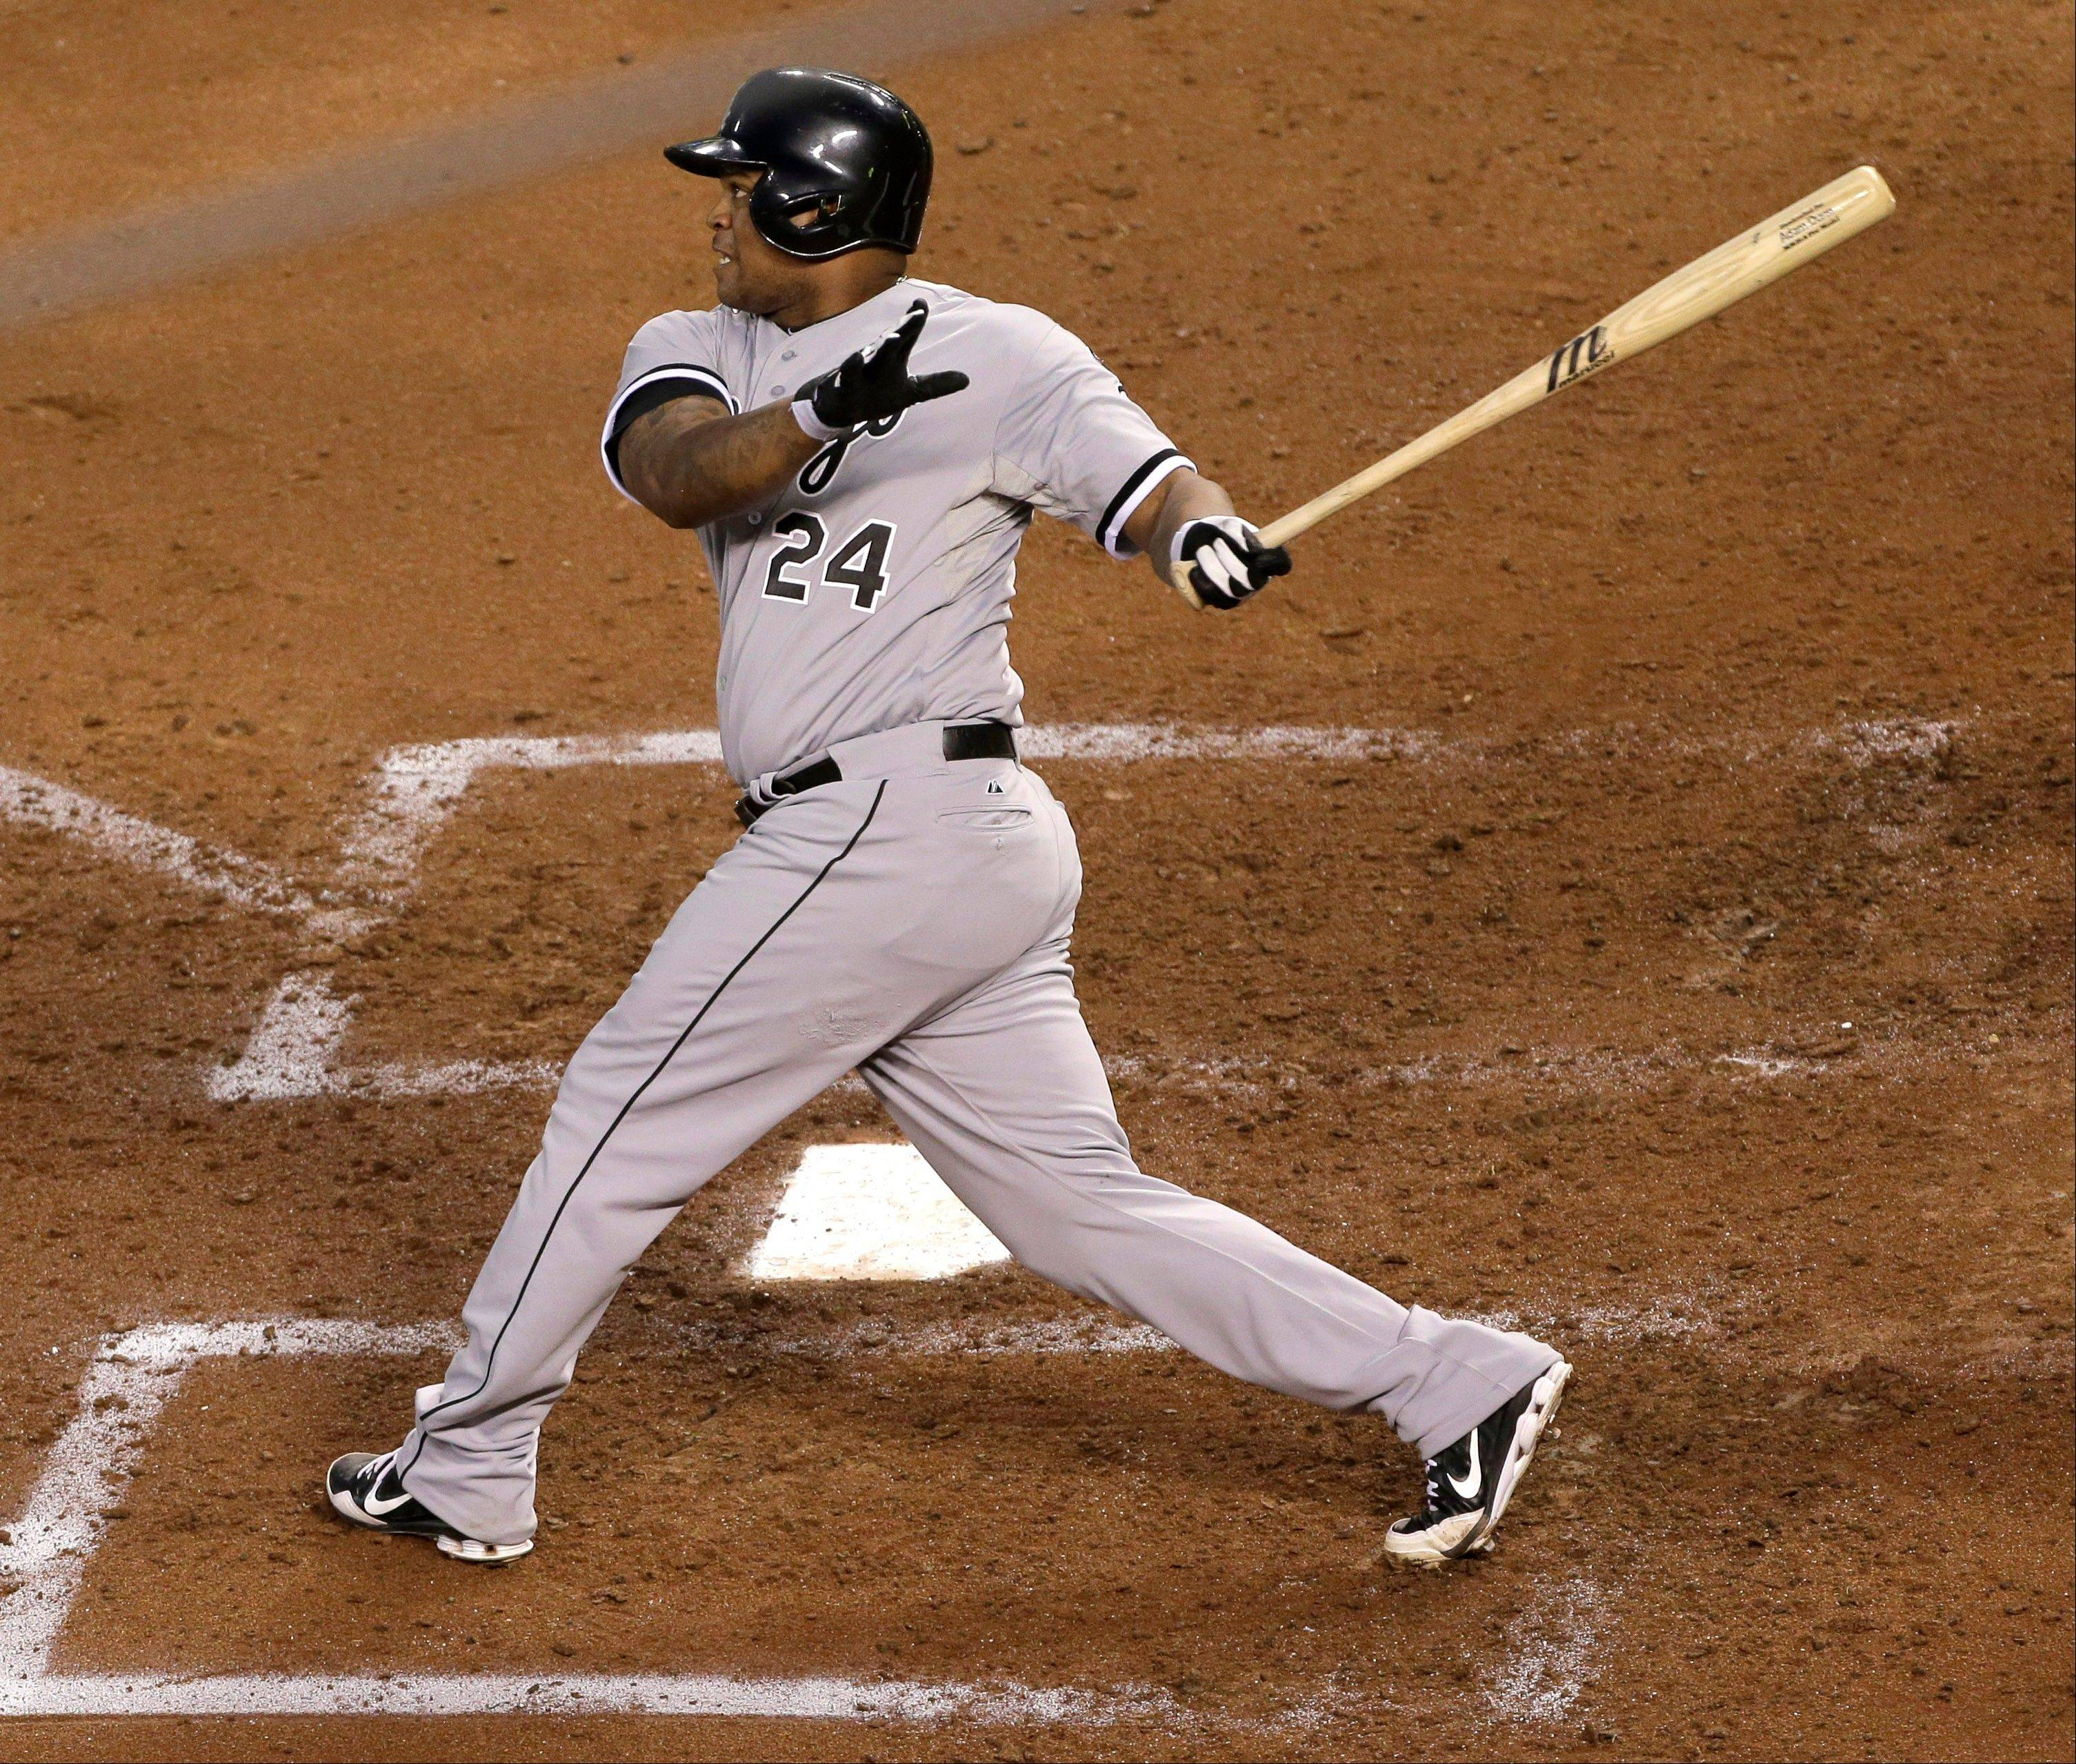 Chicago White Sox's Dayan Viciedo hits a grand slam during the fourth inning of a baseball game against the Kansas City Royals, Wednesday, Aug. 21, 2013, in Kansas City, Mo.